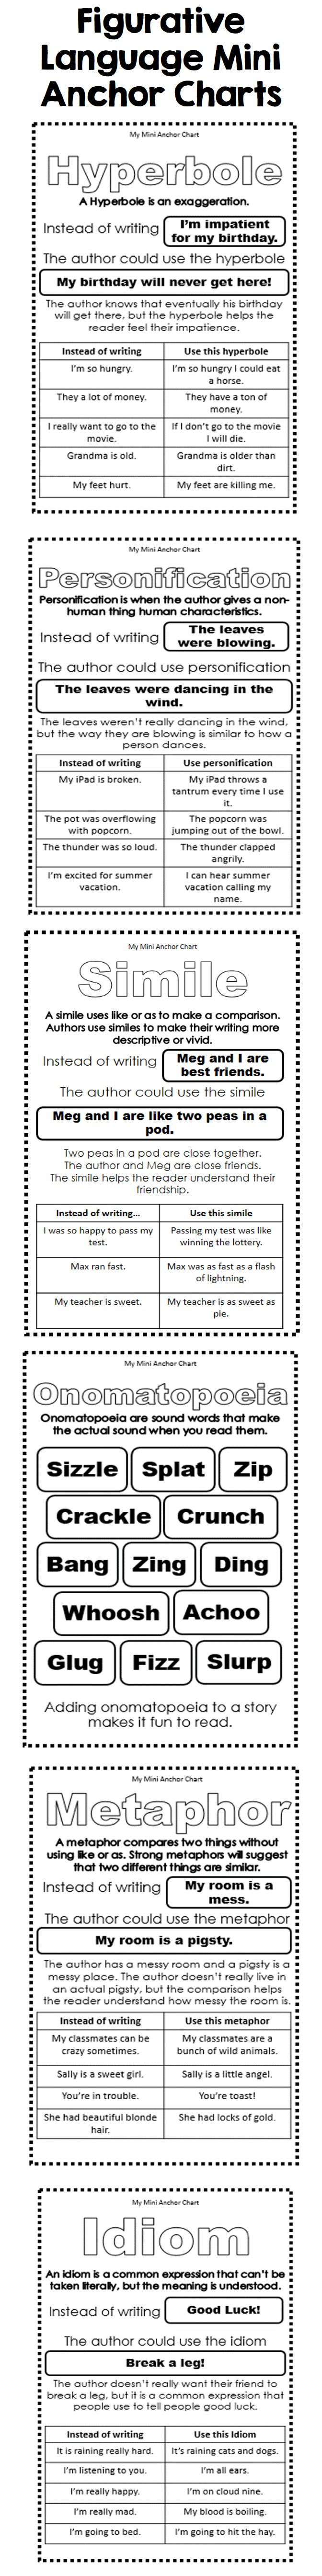 These mini anchor charts are a great addition to an interactive reading or writing notebook.  Product includes Mini Anchor Charts for Similes, Metaphors, Personification, Hyperbole, Idioms, and Onomatopoeia.   Mini Anchor chart includes a definition, example, and explanation of how to use it in your writing.